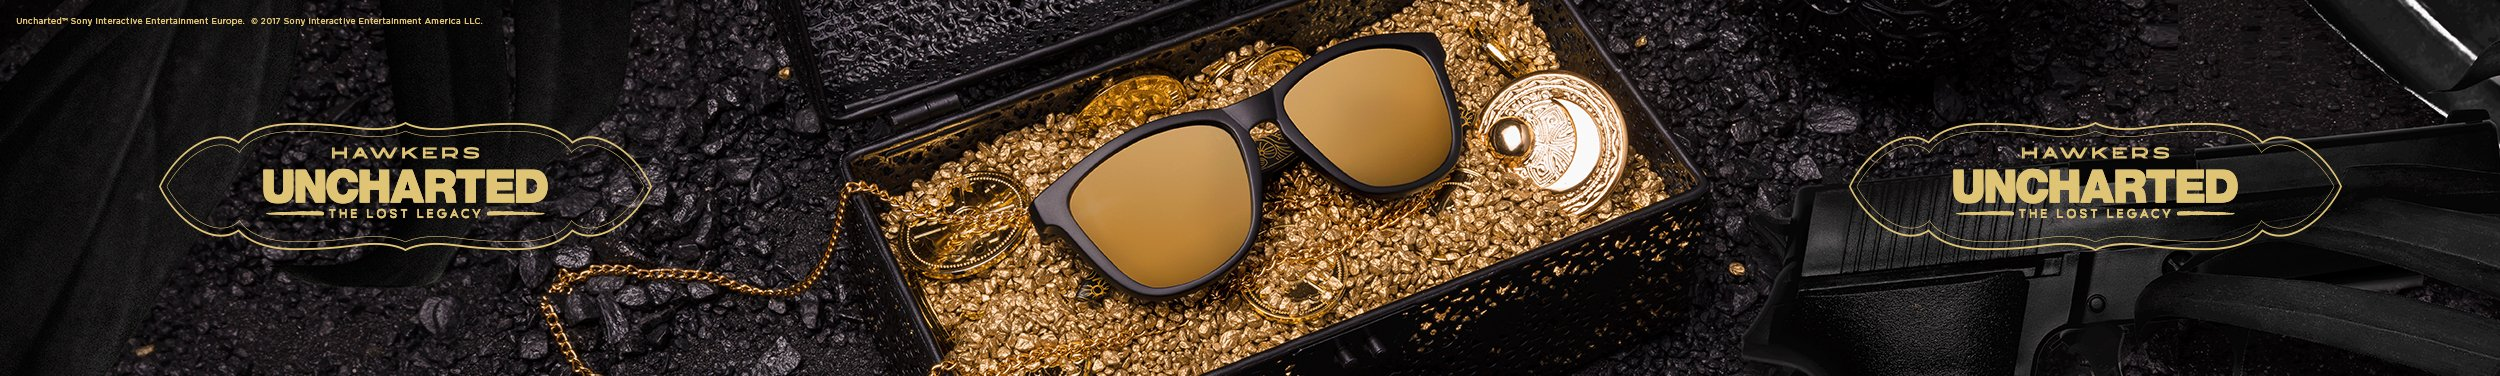 Hawkers limited edition collection Sunglasses uncharted